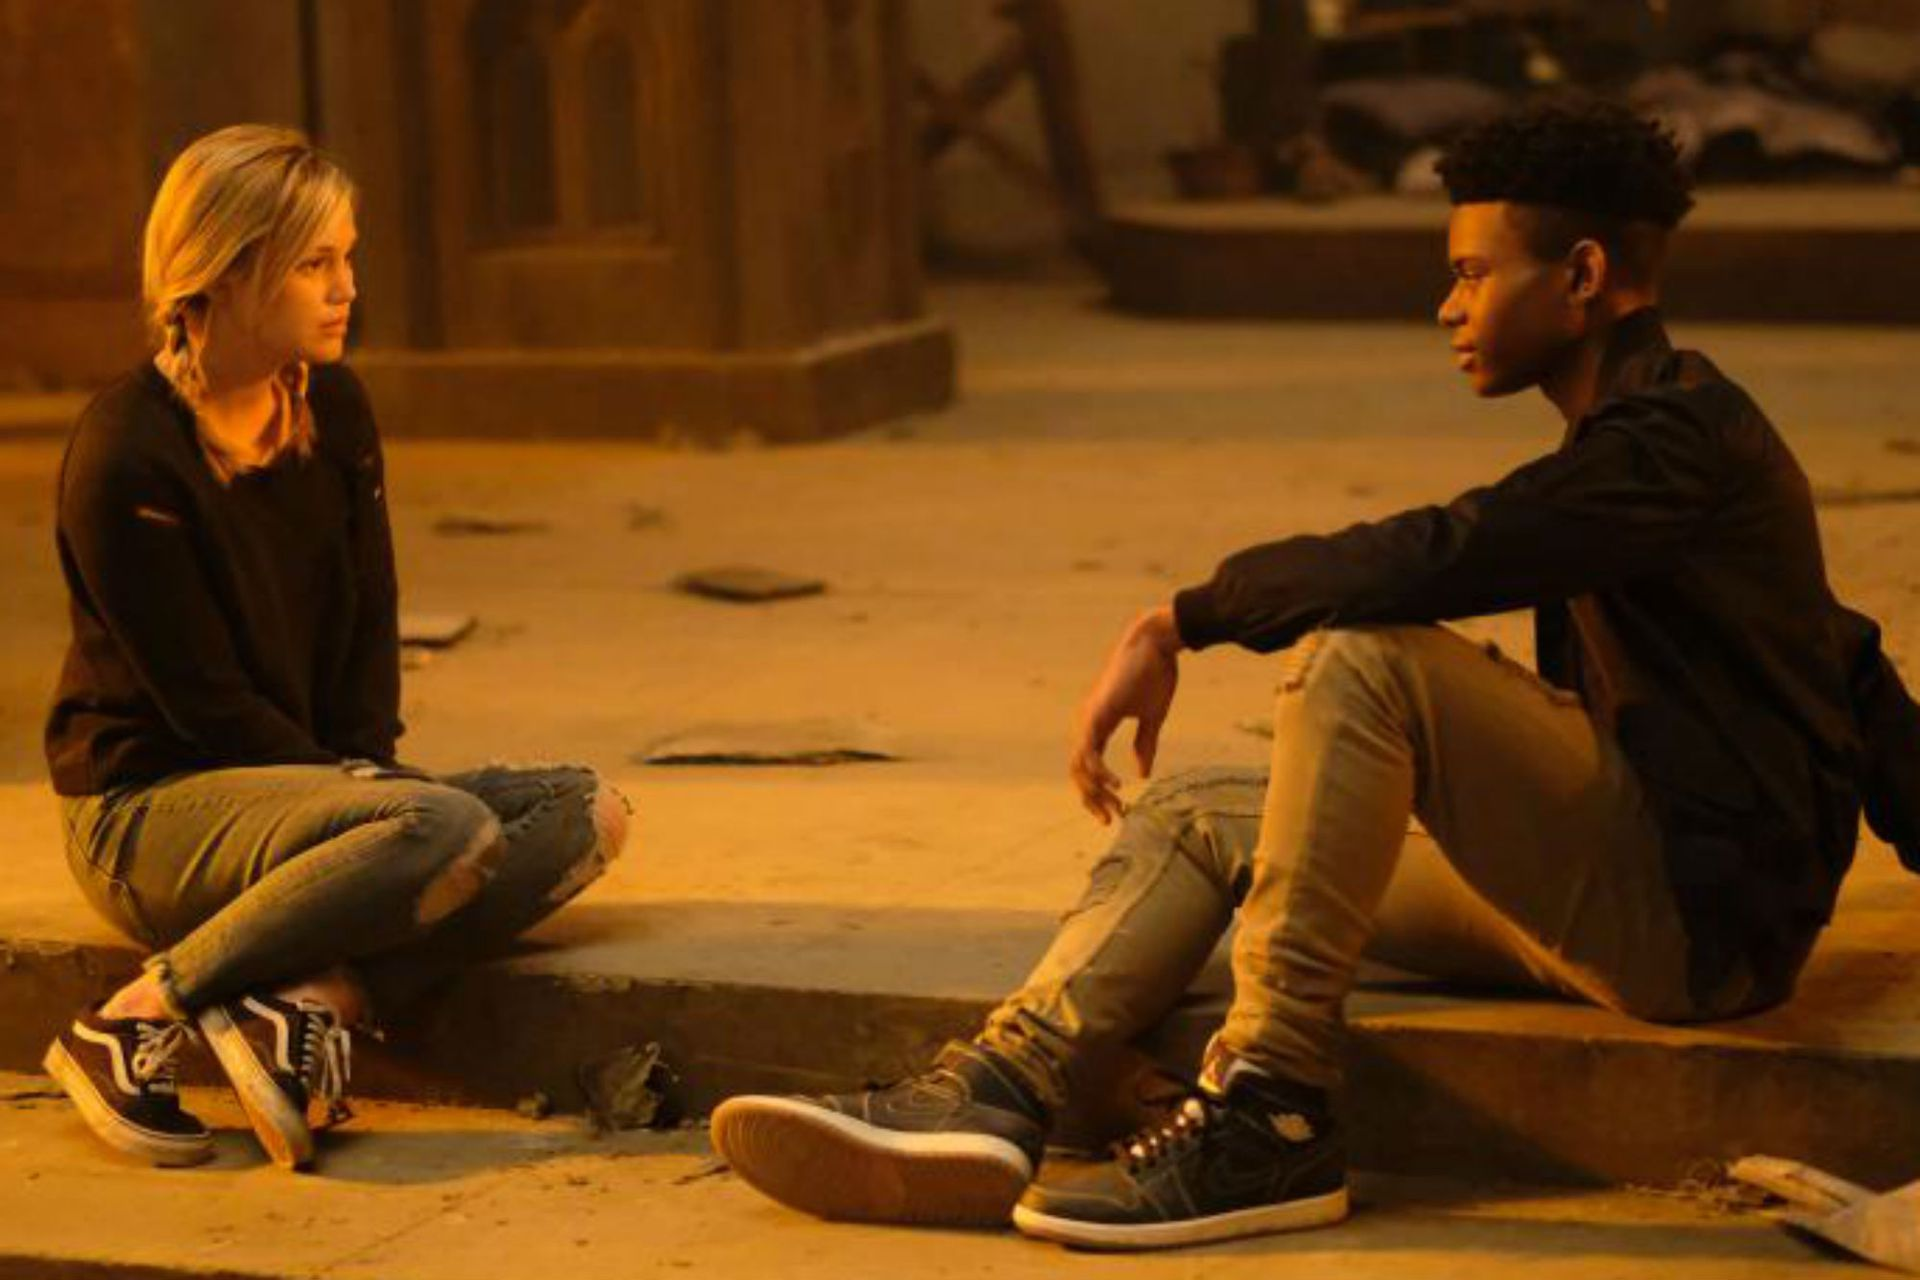 Marvel Cloack and Dagger